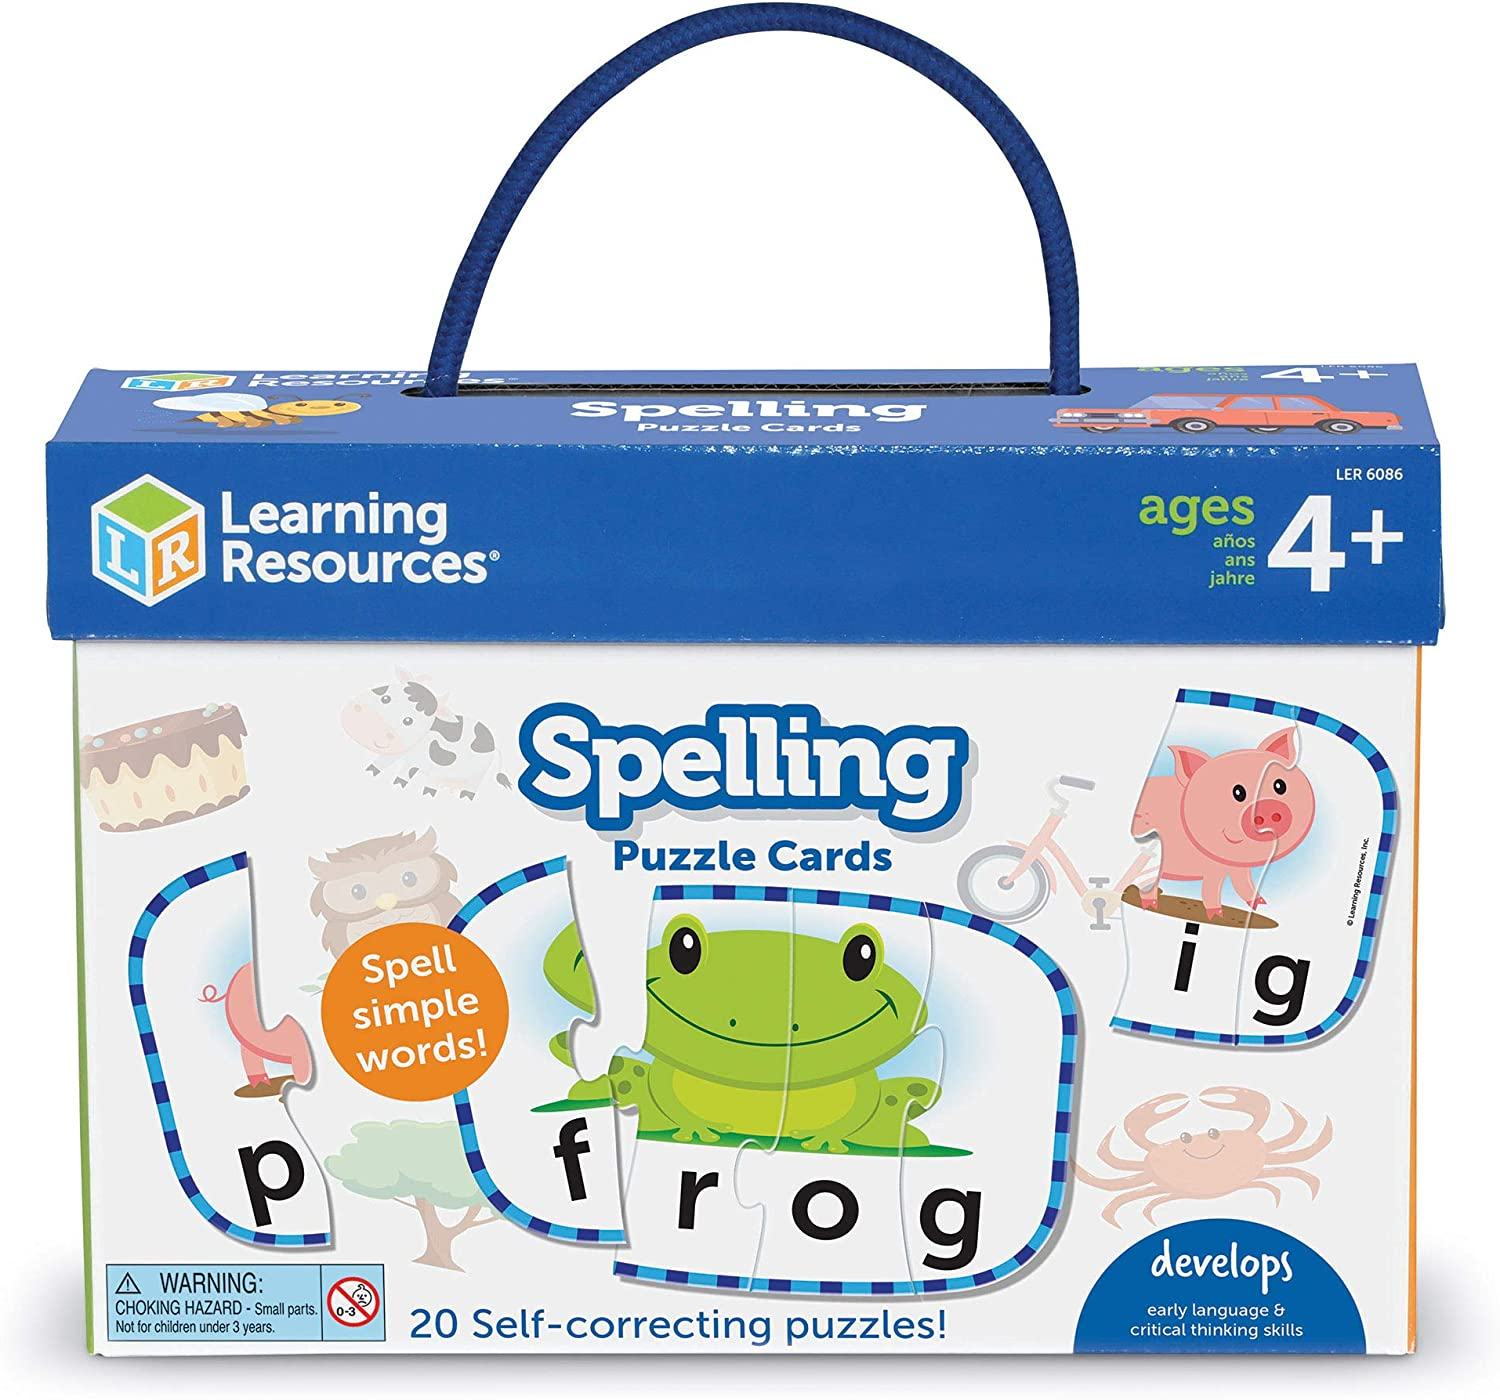 Learning Resources Spelling Puzzle Cards, Kindergarten Readniness, Self Correcting Puzzles, Ages 4+ (Multi)